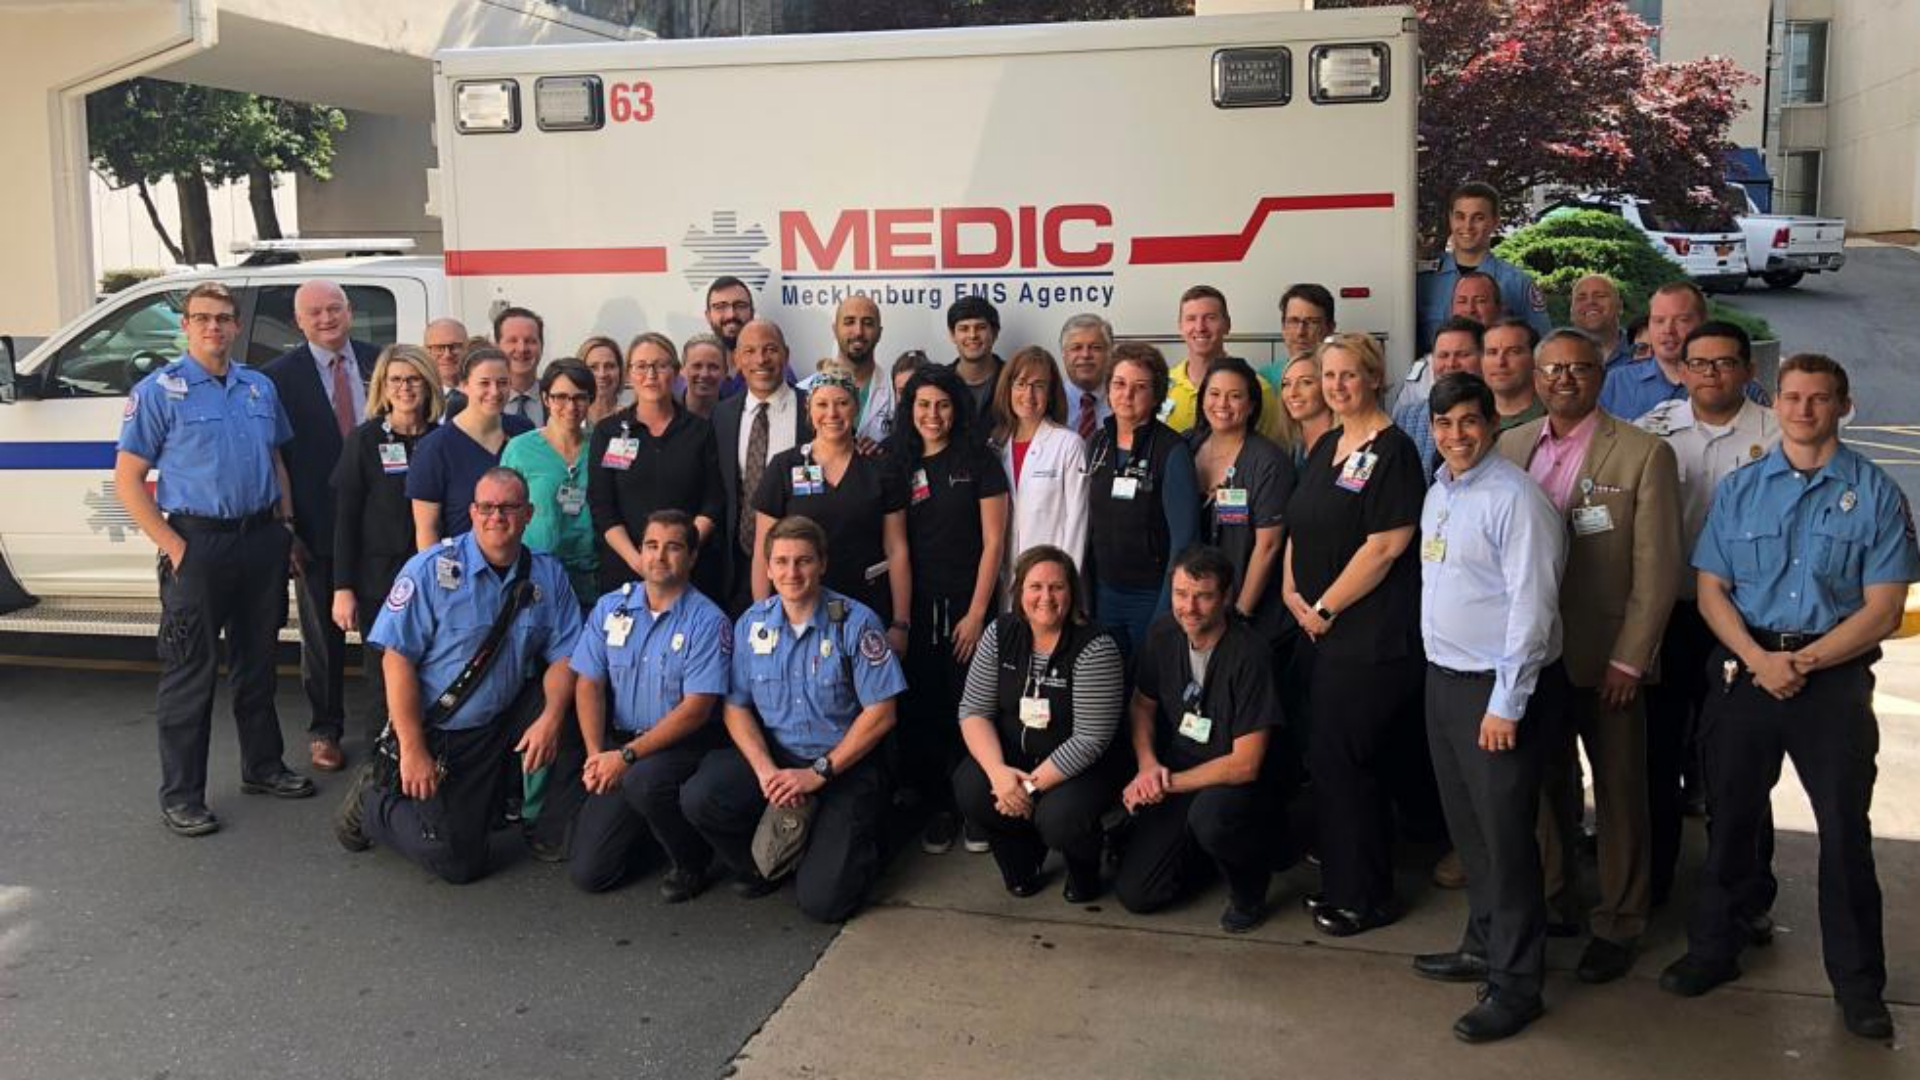 Eugene A. Woods, president and chief executive officer of Atrium Health, with the staff of Atrium Health's Carolinas Medical Center's Emergency Department and MEDIC.